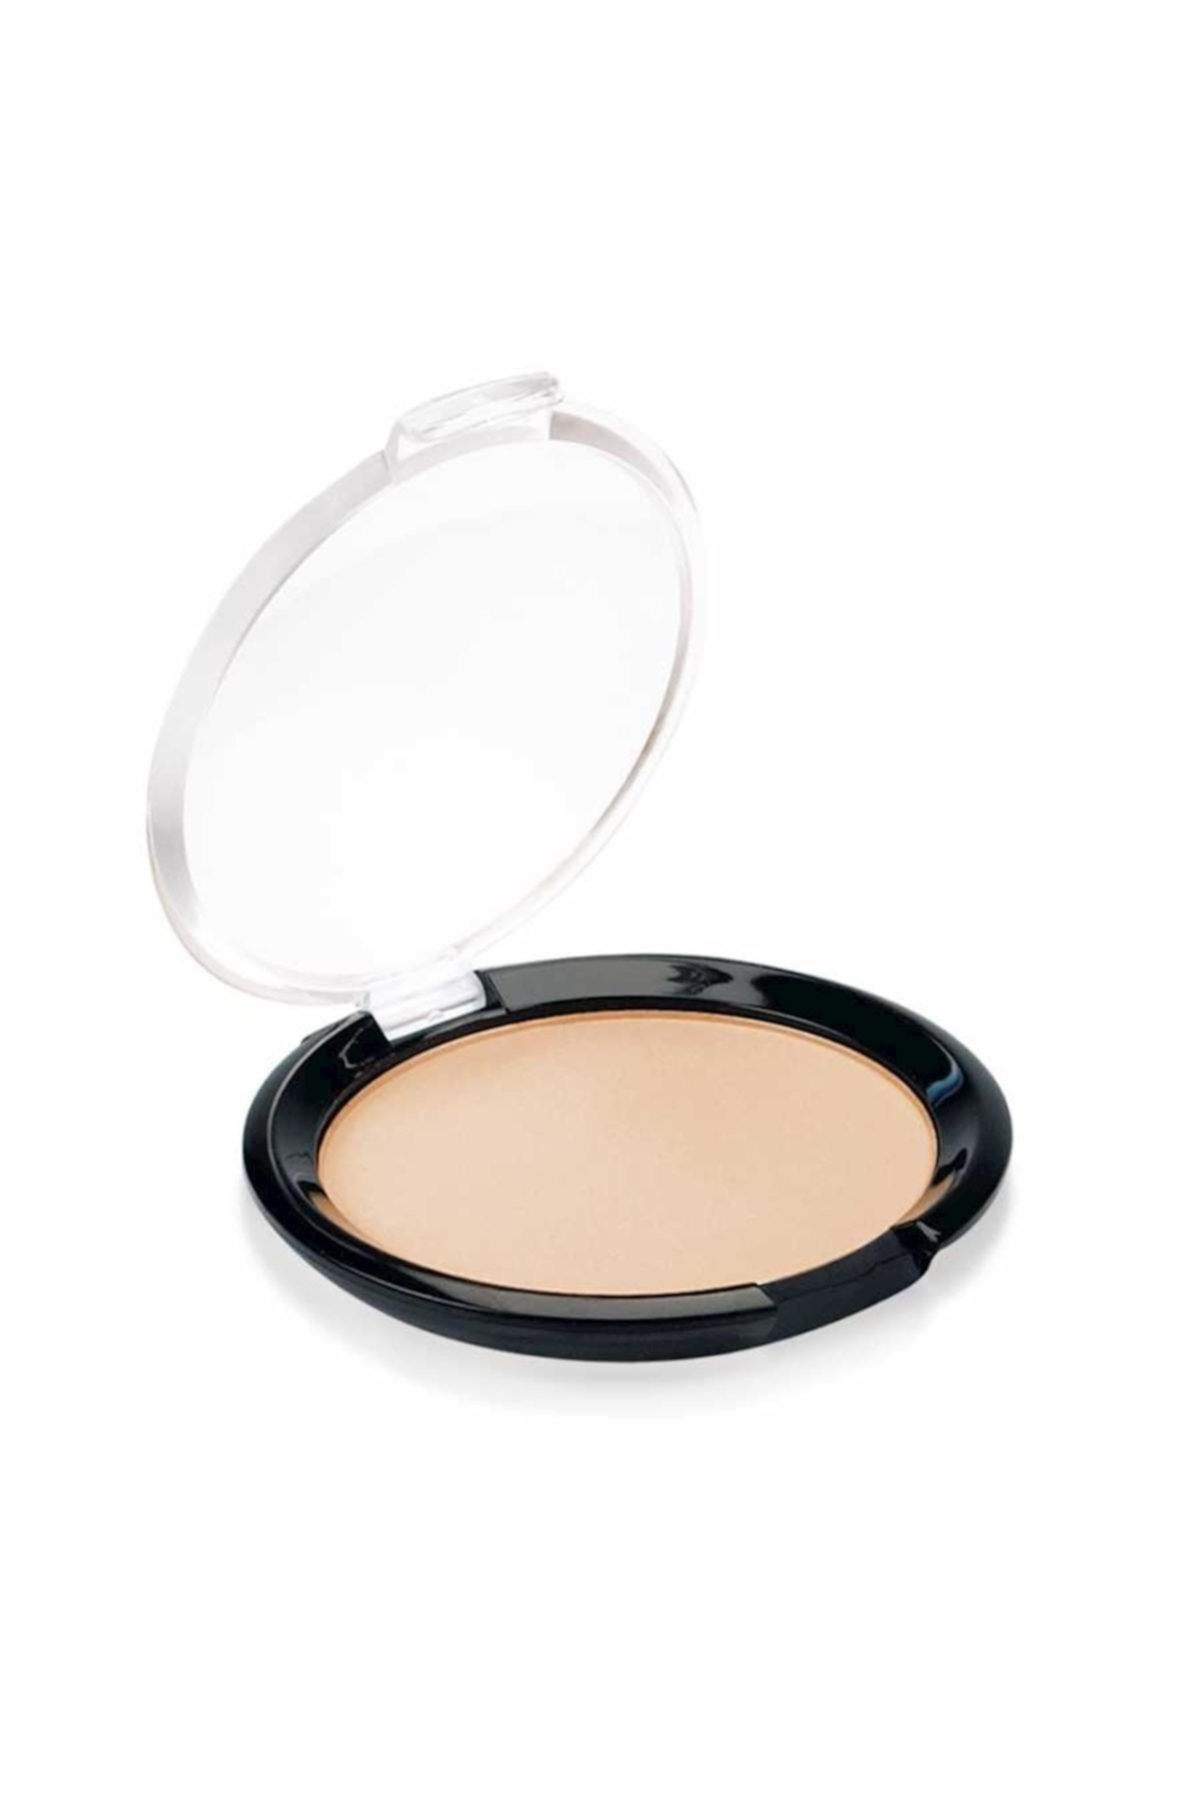 Golden Rose Sılky Touch Compact Powder No 07** 1